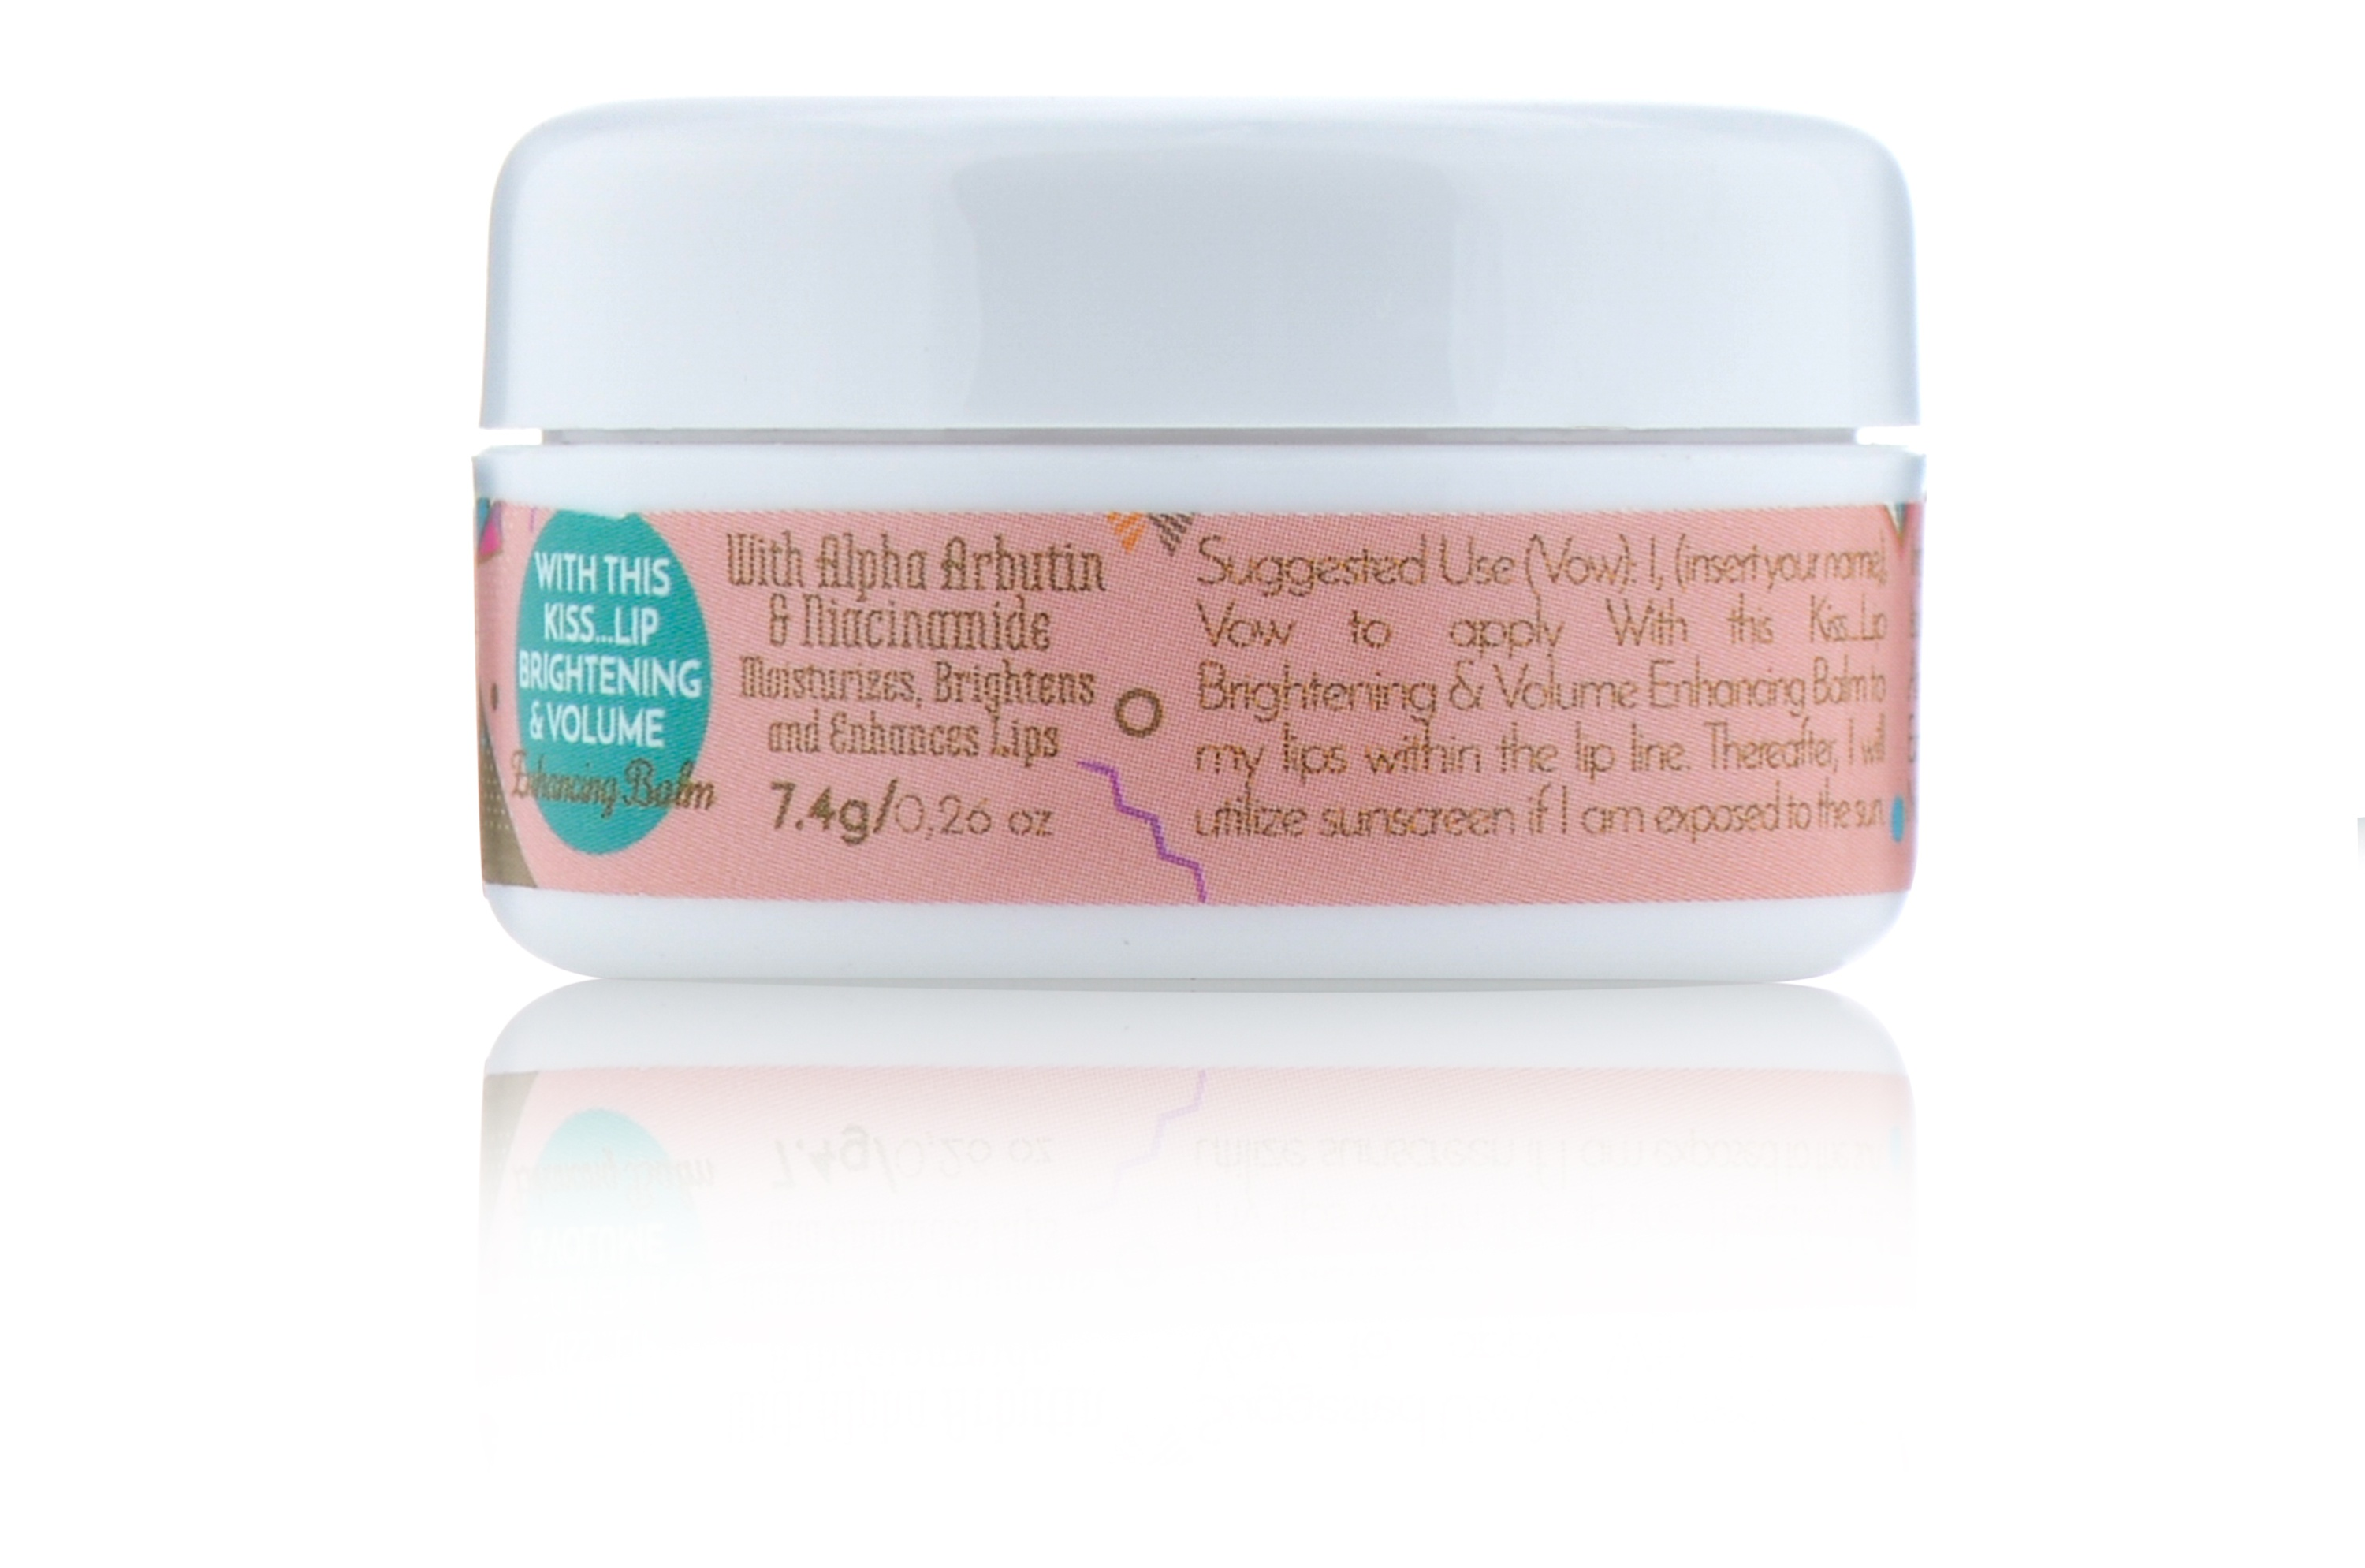 Vow Beauty With This Kiss...Lip Brightening & Volume Enhancing Balm